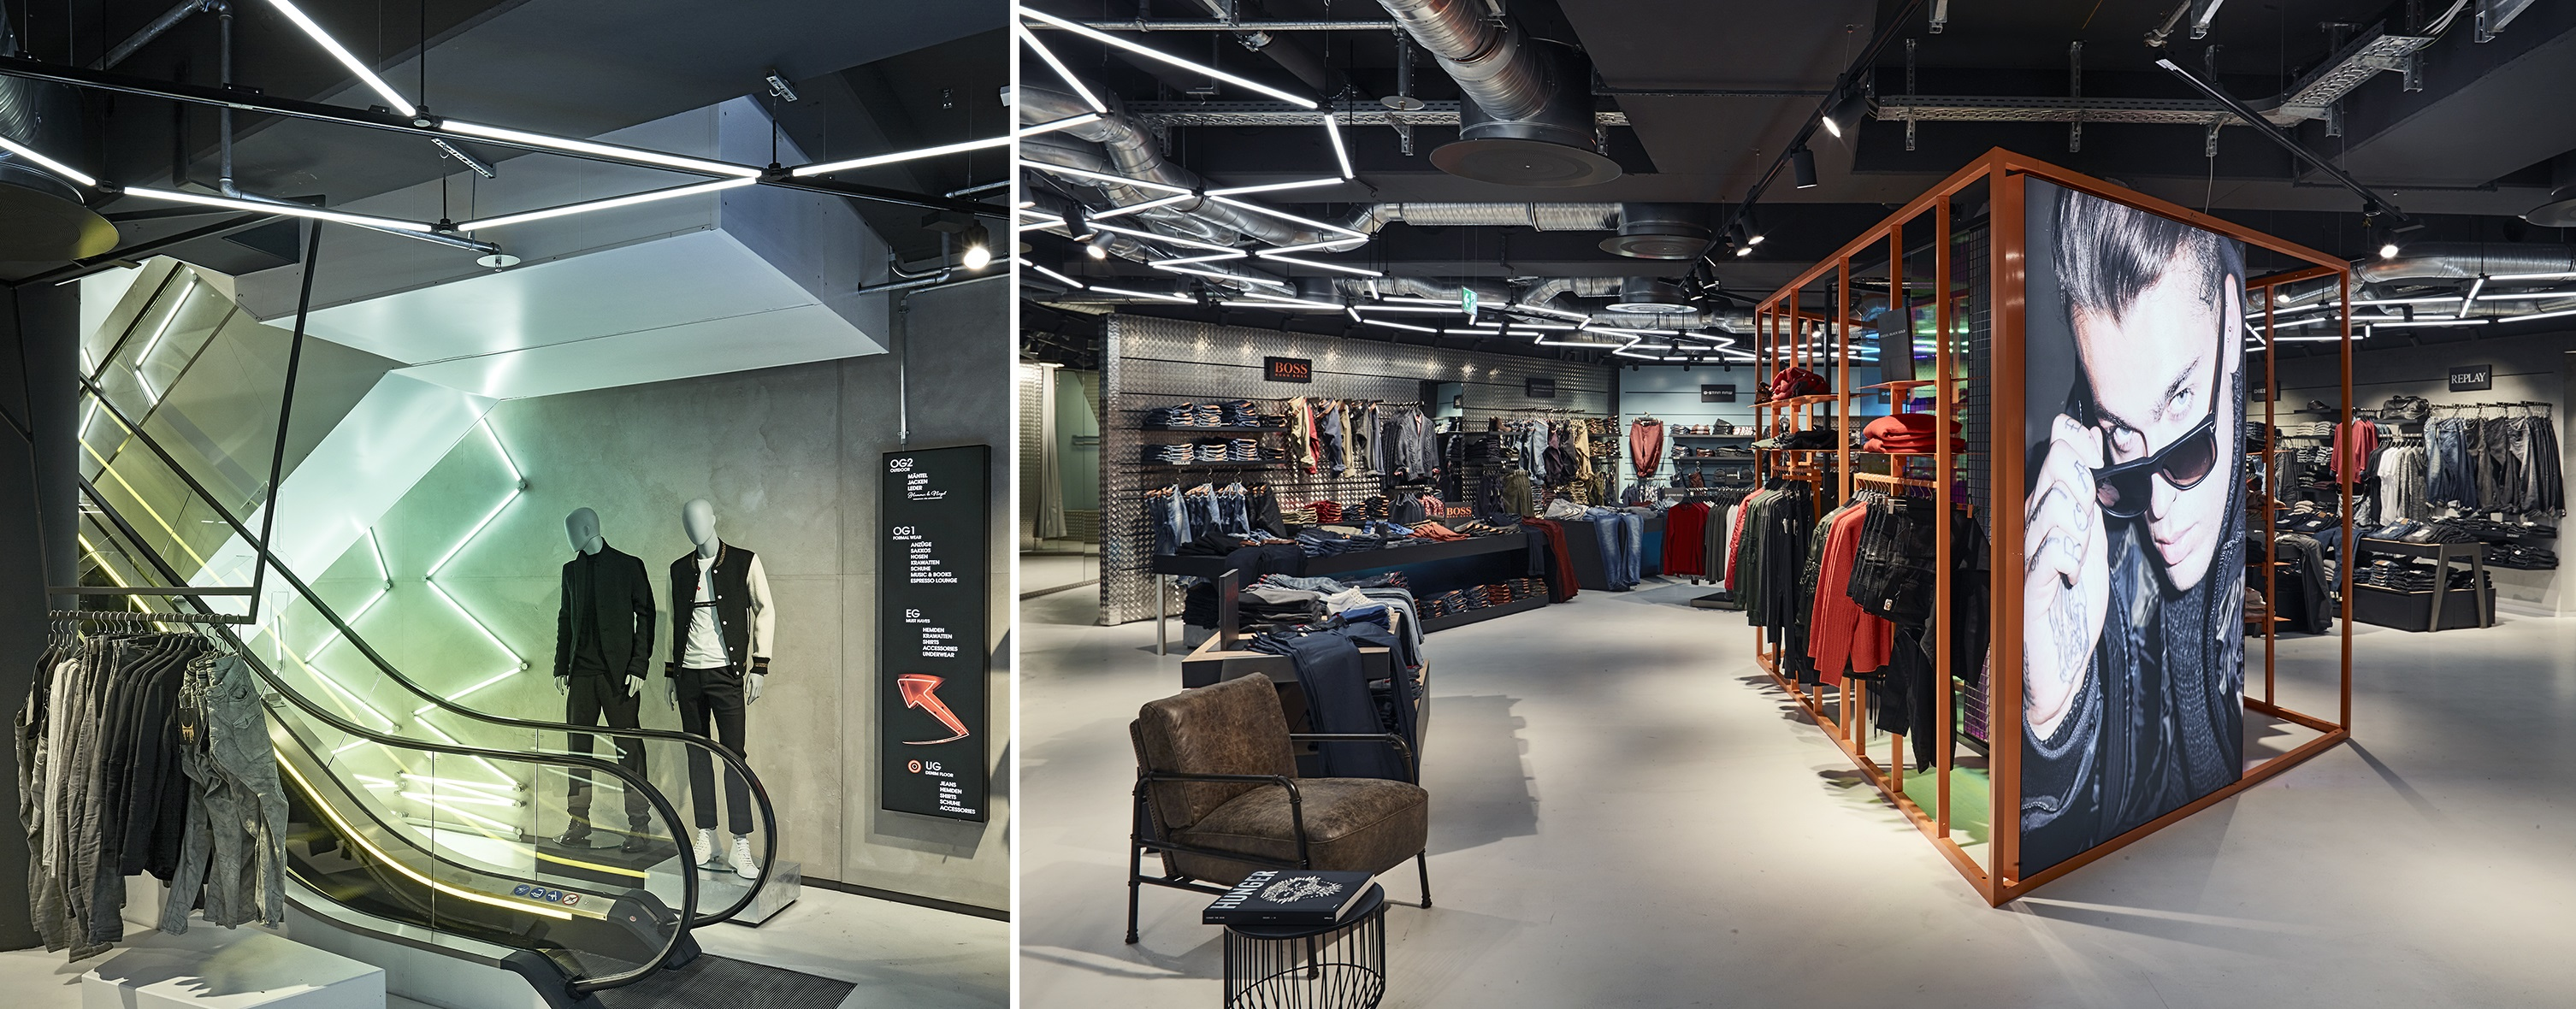 Picture of Ligeo light system applied in a retail situation